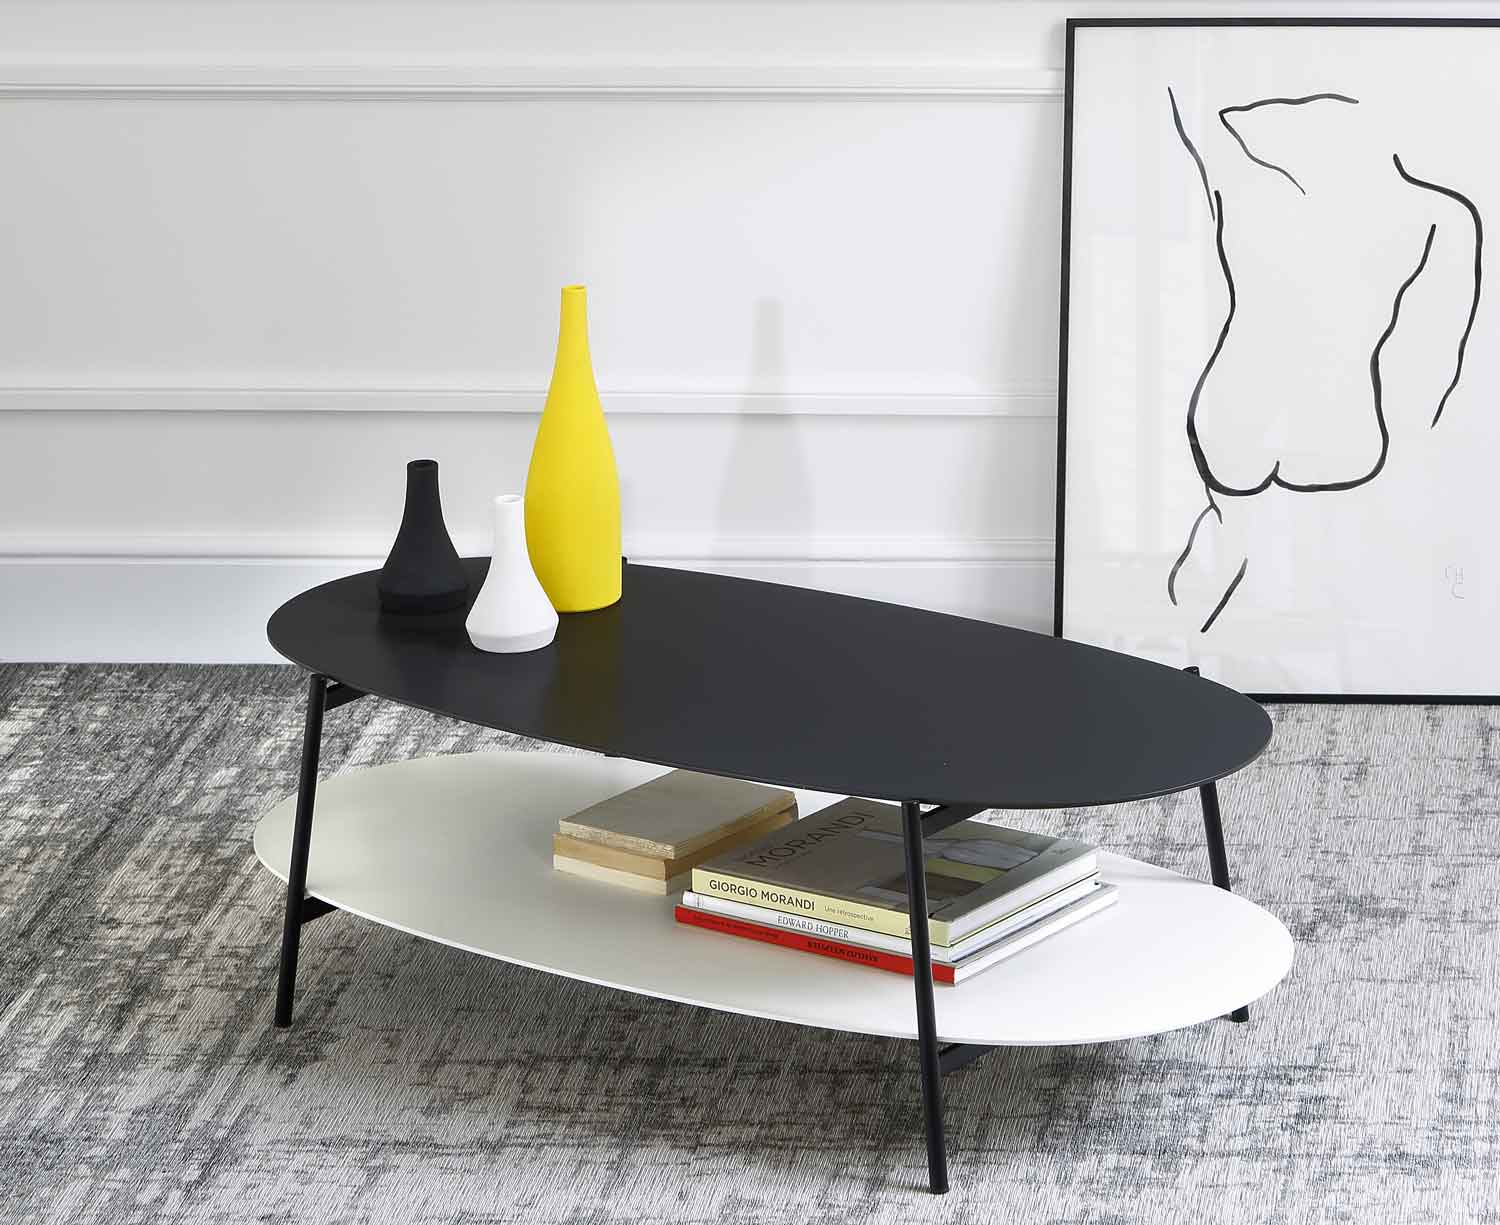 Shaman Couchtisch Highlights From Maison Objet 2015 Yellowtrace